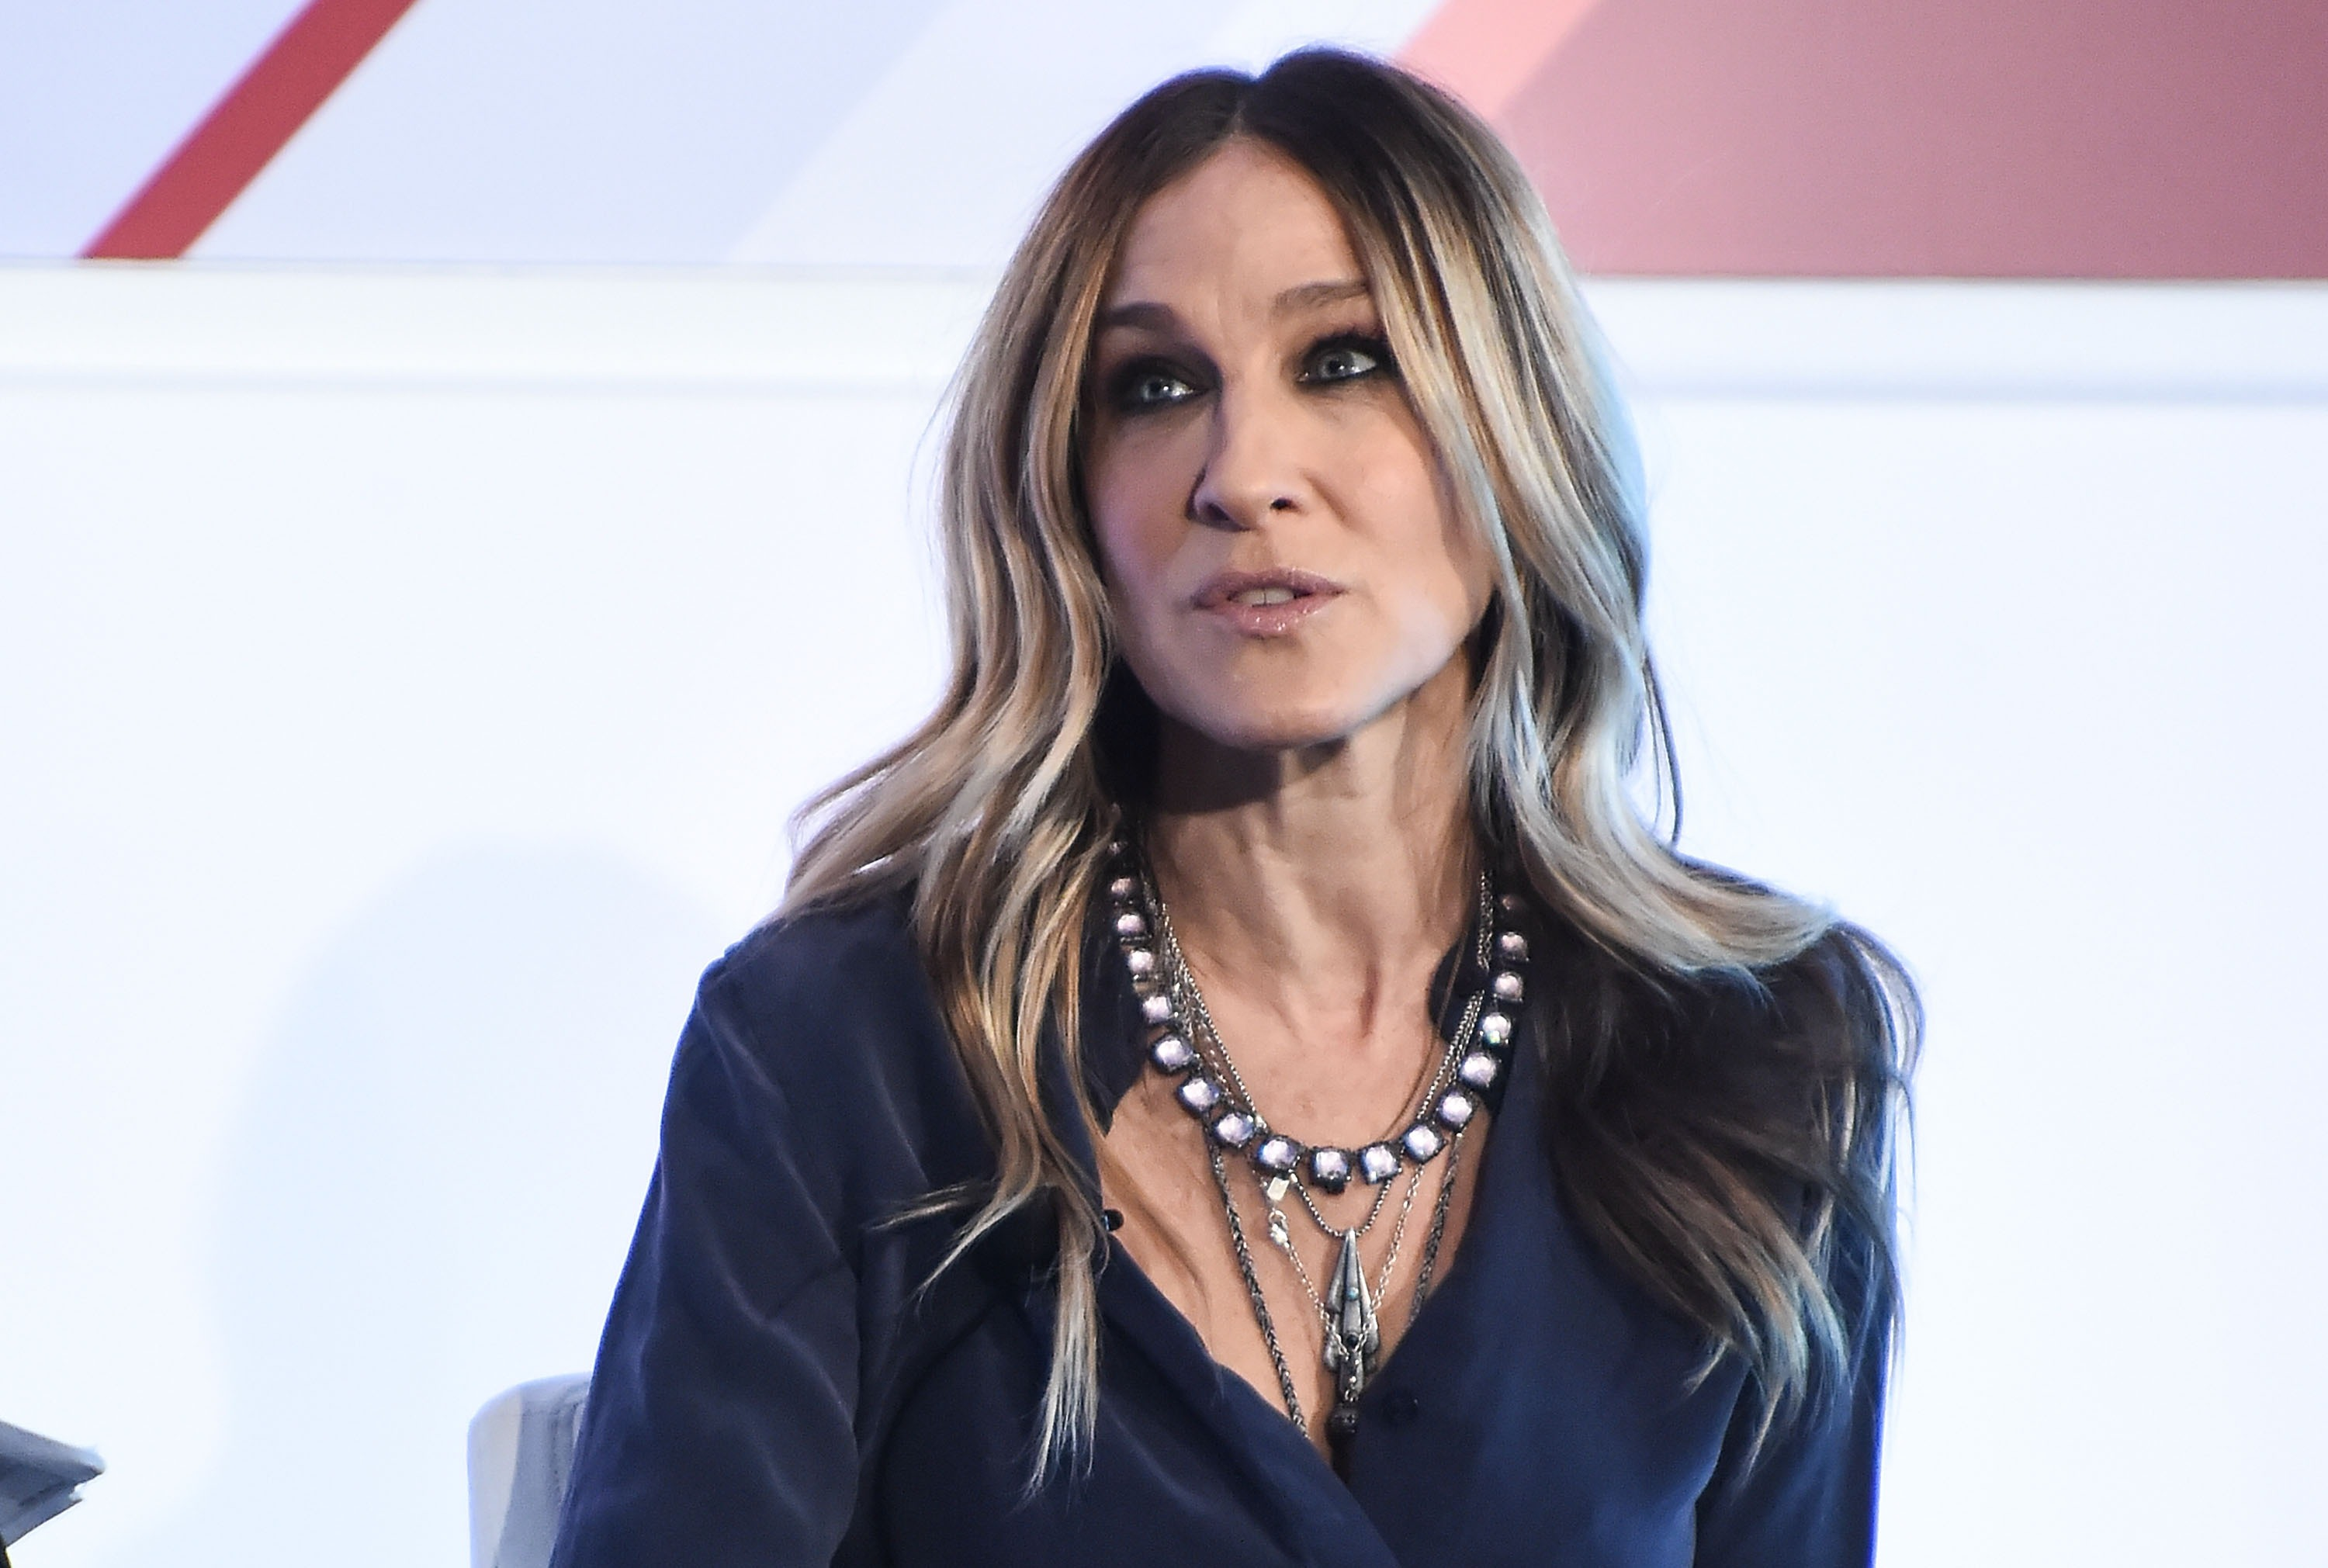 Sarah Jessica Parker speaks onstage during the 2016 Forbes Women's Summit on May 12, 2016 in New York, New York.